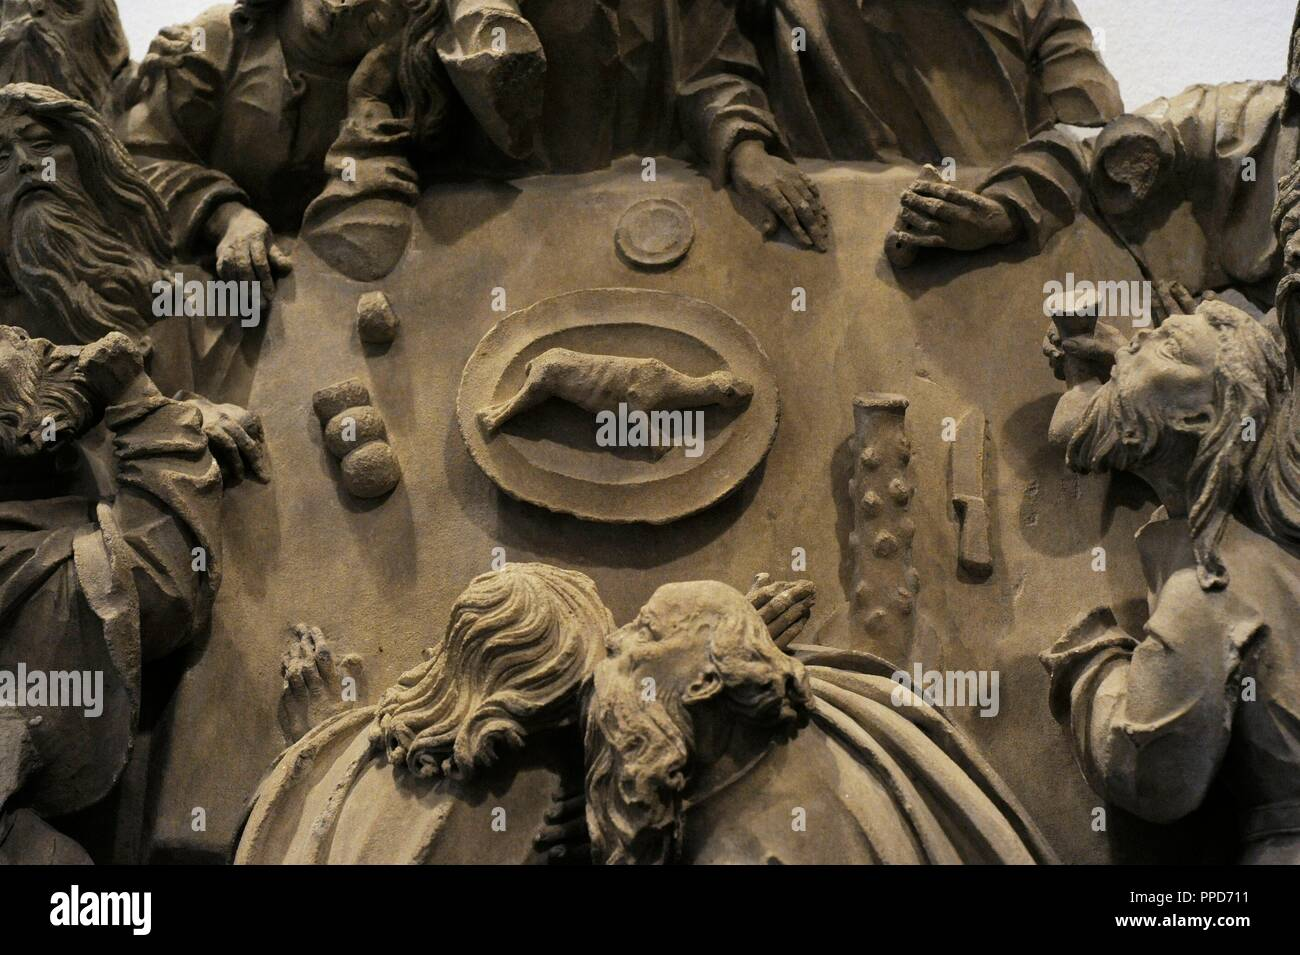 The Last Supper from the sacrament house of Cologne Cathedral, Germany. Cologne, c. 1510. Sculptural group. detail. Baumberg Sandstone. Schnu_tgen Museum. Cologne, Germany. - Stock Image